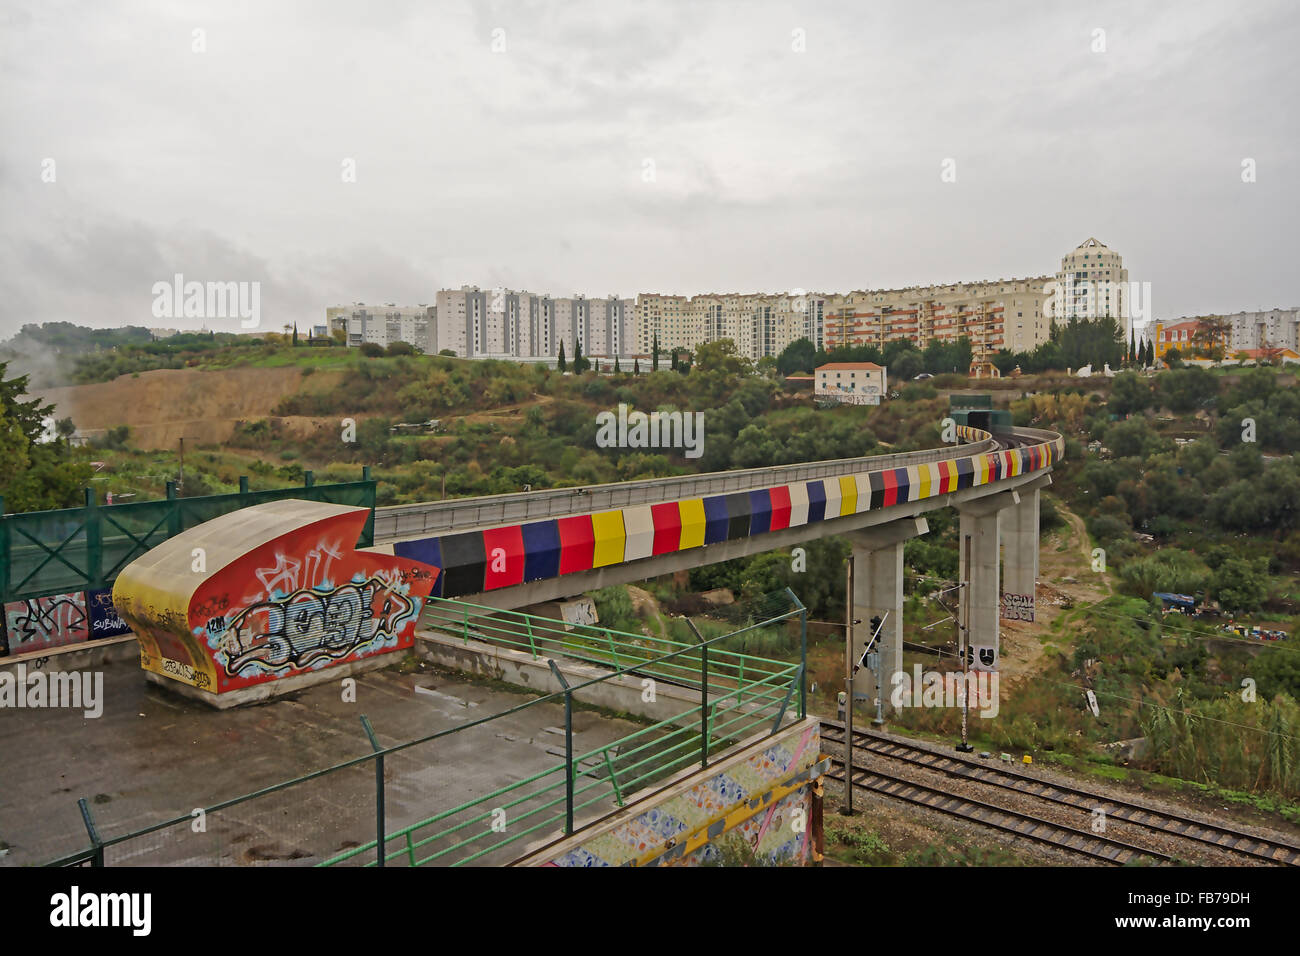 Colourfull train track with graffiti through urban wasteland with new apartment blocks in the background, lisbon, - Stock Image